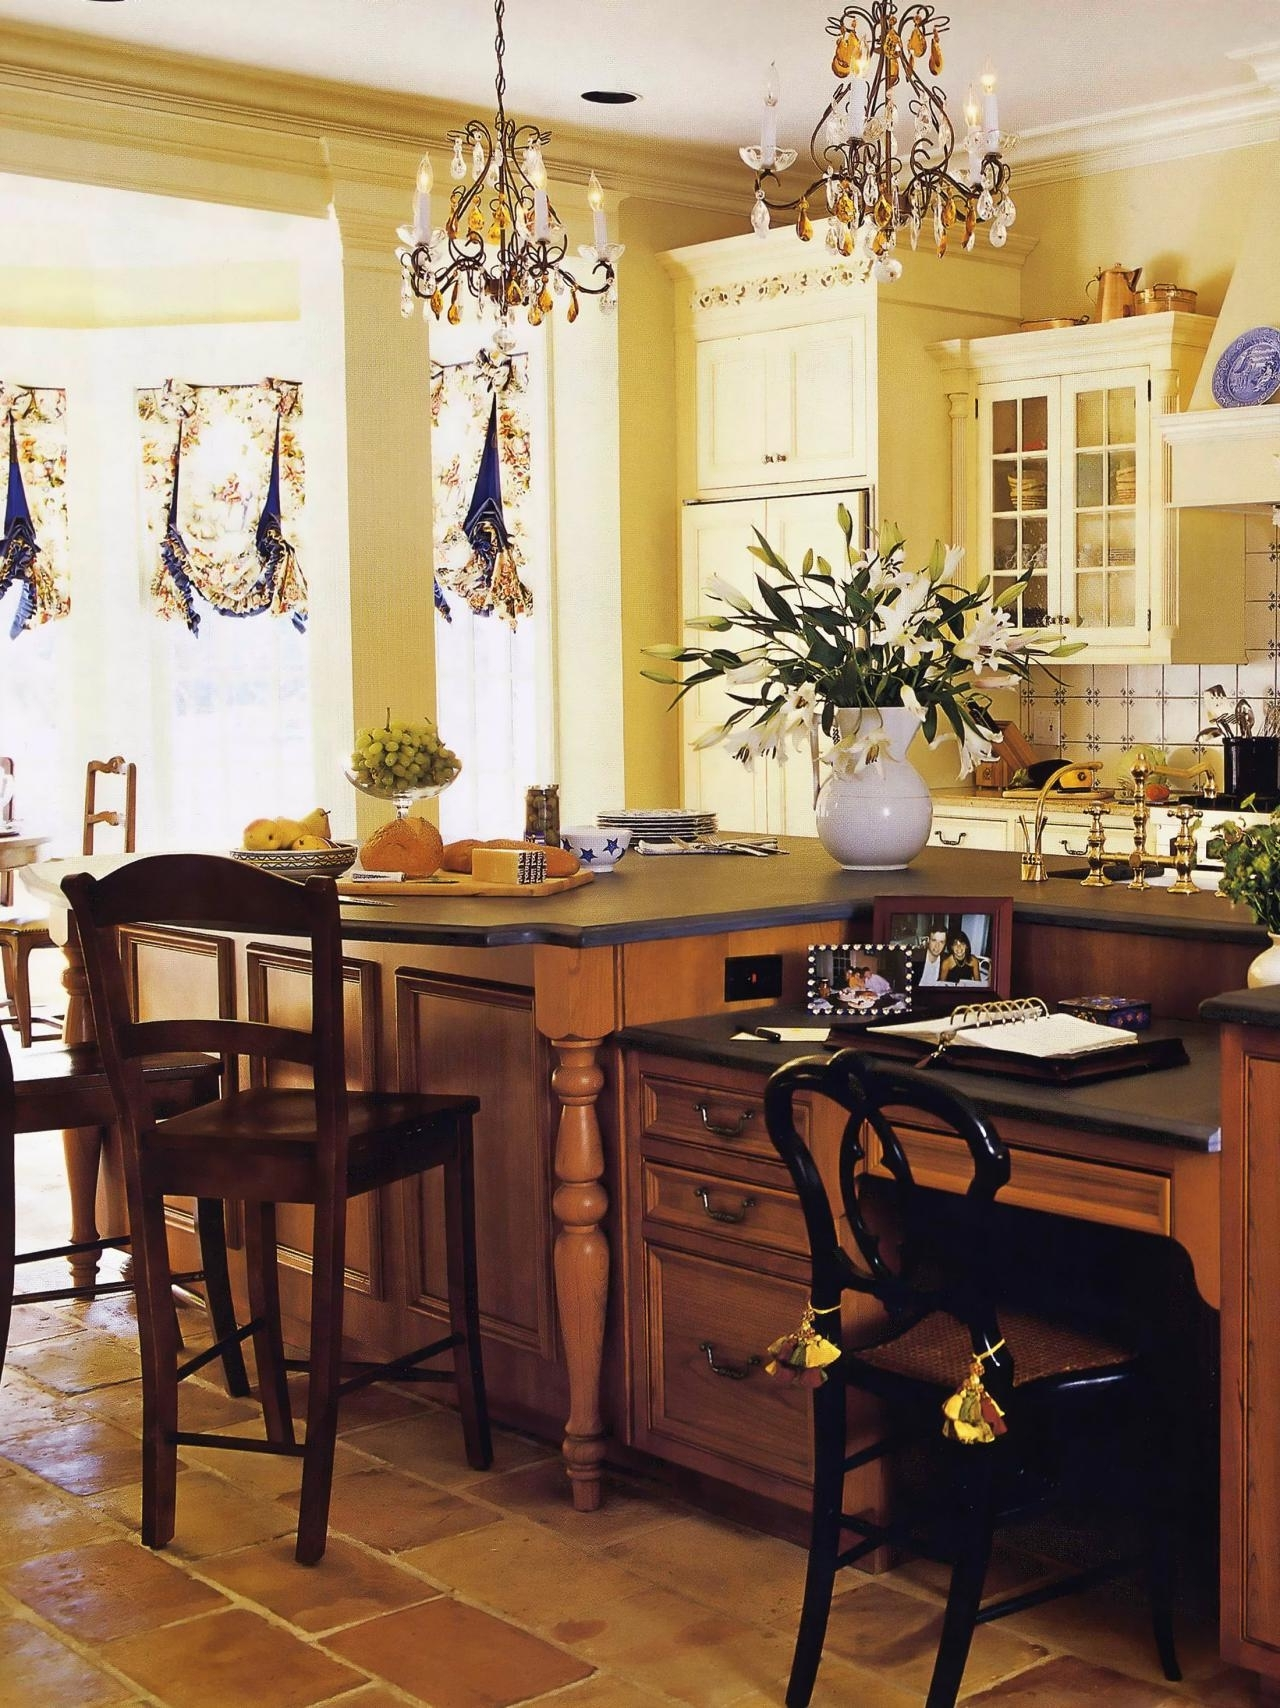 Most Popular French Country Chandeliers For Kitchen Regarding Kitchen : Drum Pendant Chandelier Customize Kitchen Lighting With (View 15 of 20)